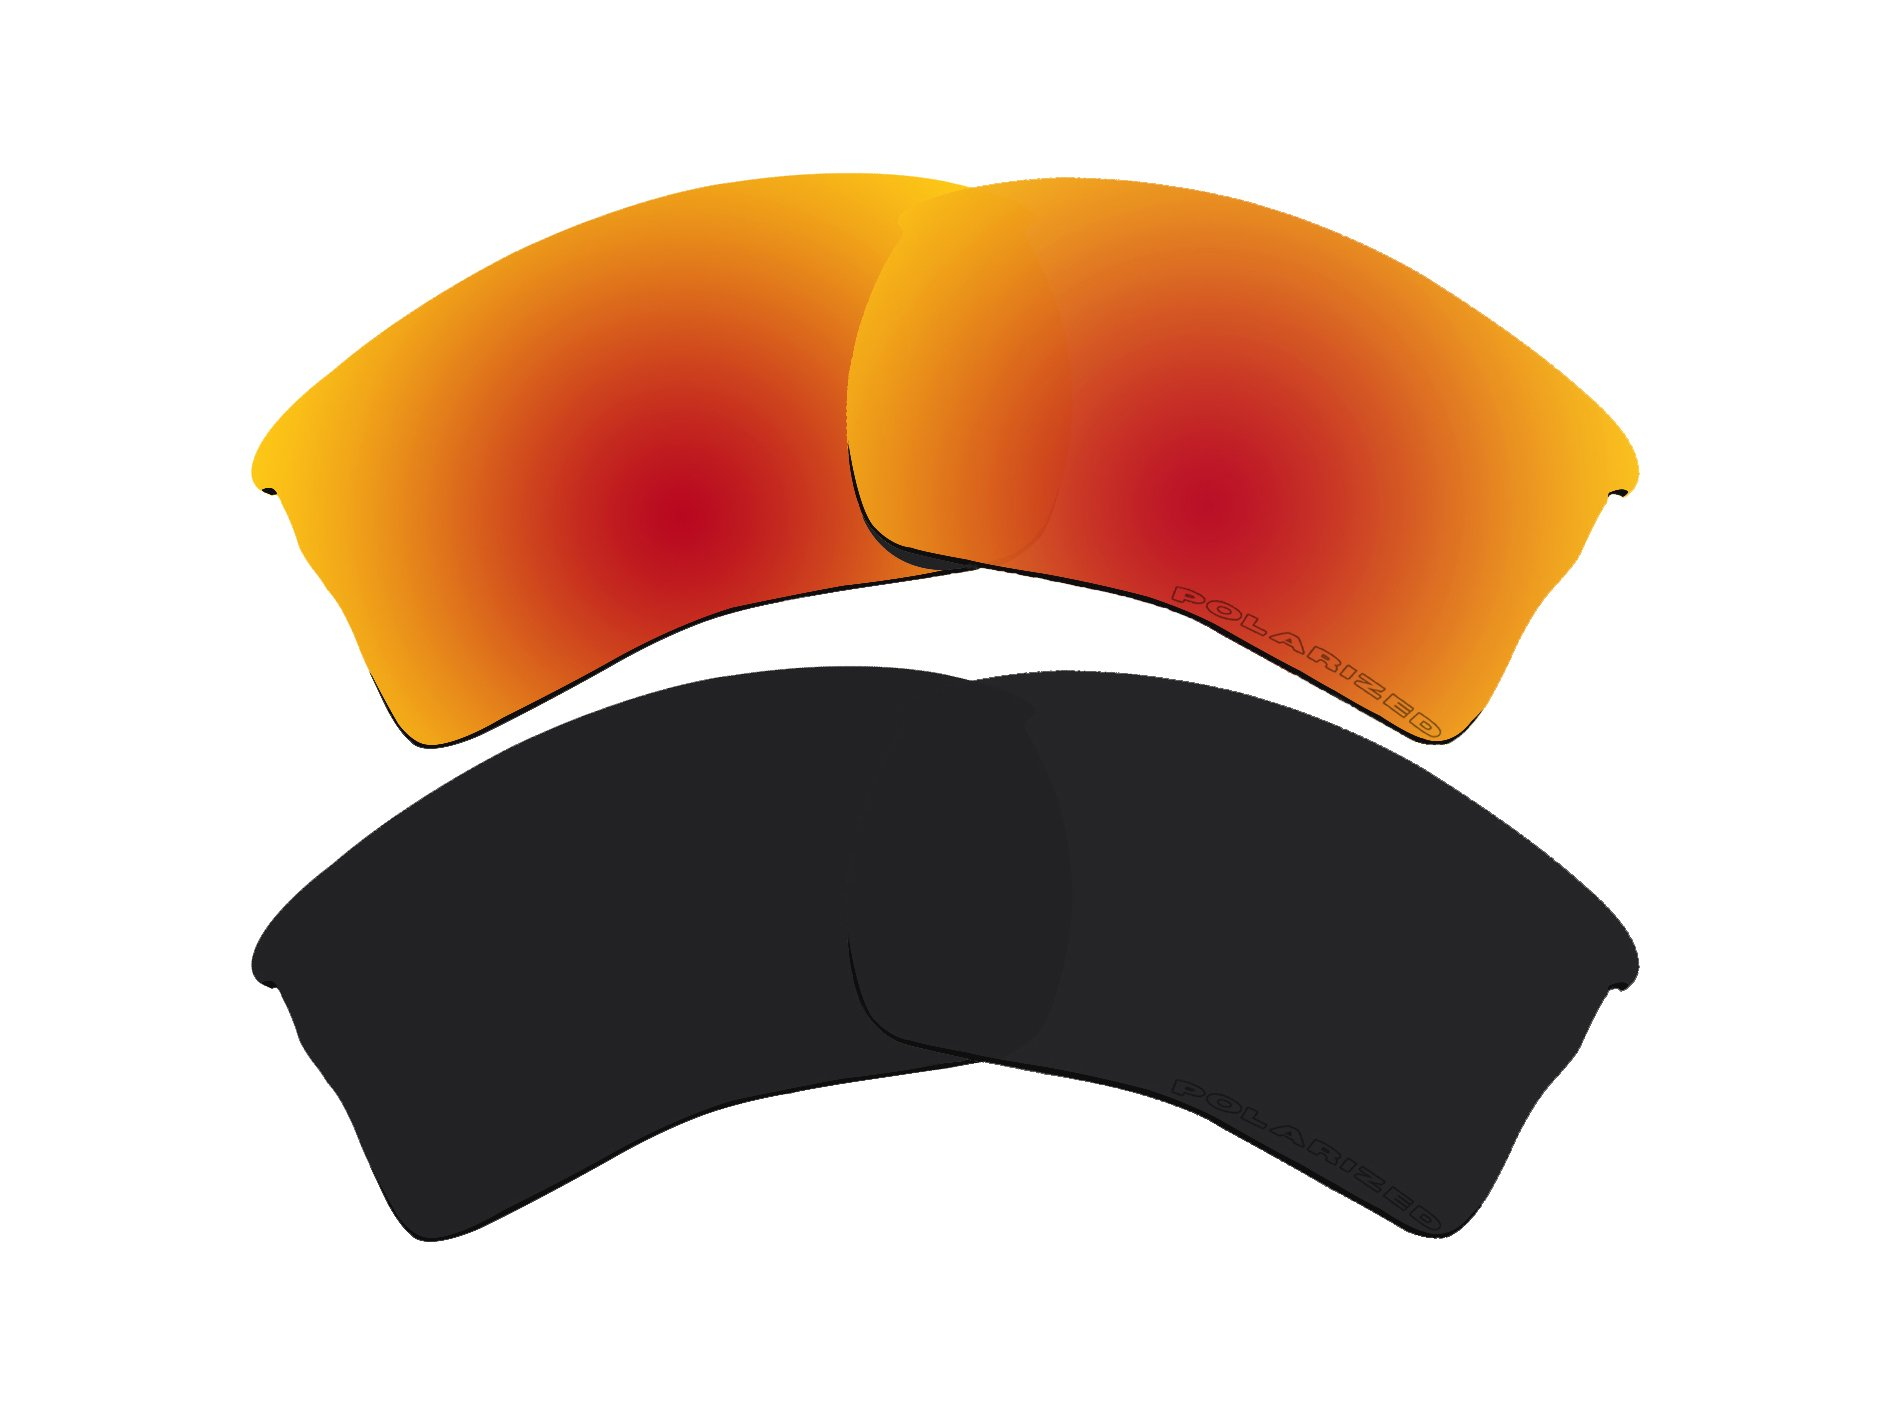 2 Pairs Polarized Lenses Replacement Red & Black for Oakley Quarter Jacket Sunglasses by BVANQ (Image #1)